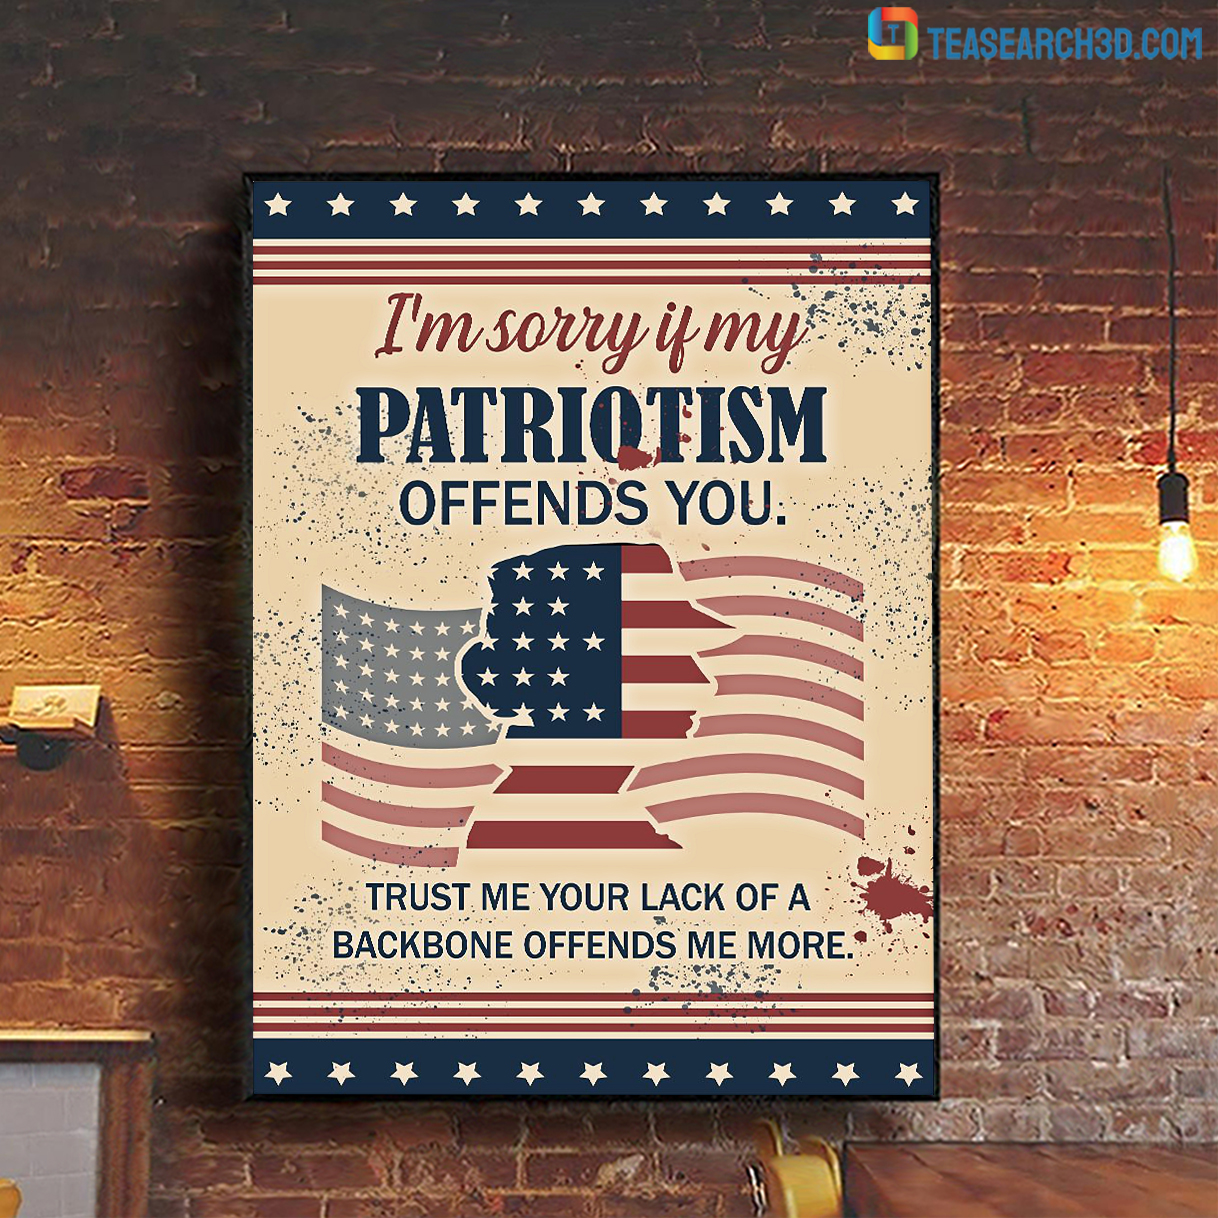 I'm sorry if my patriotism offends you poster